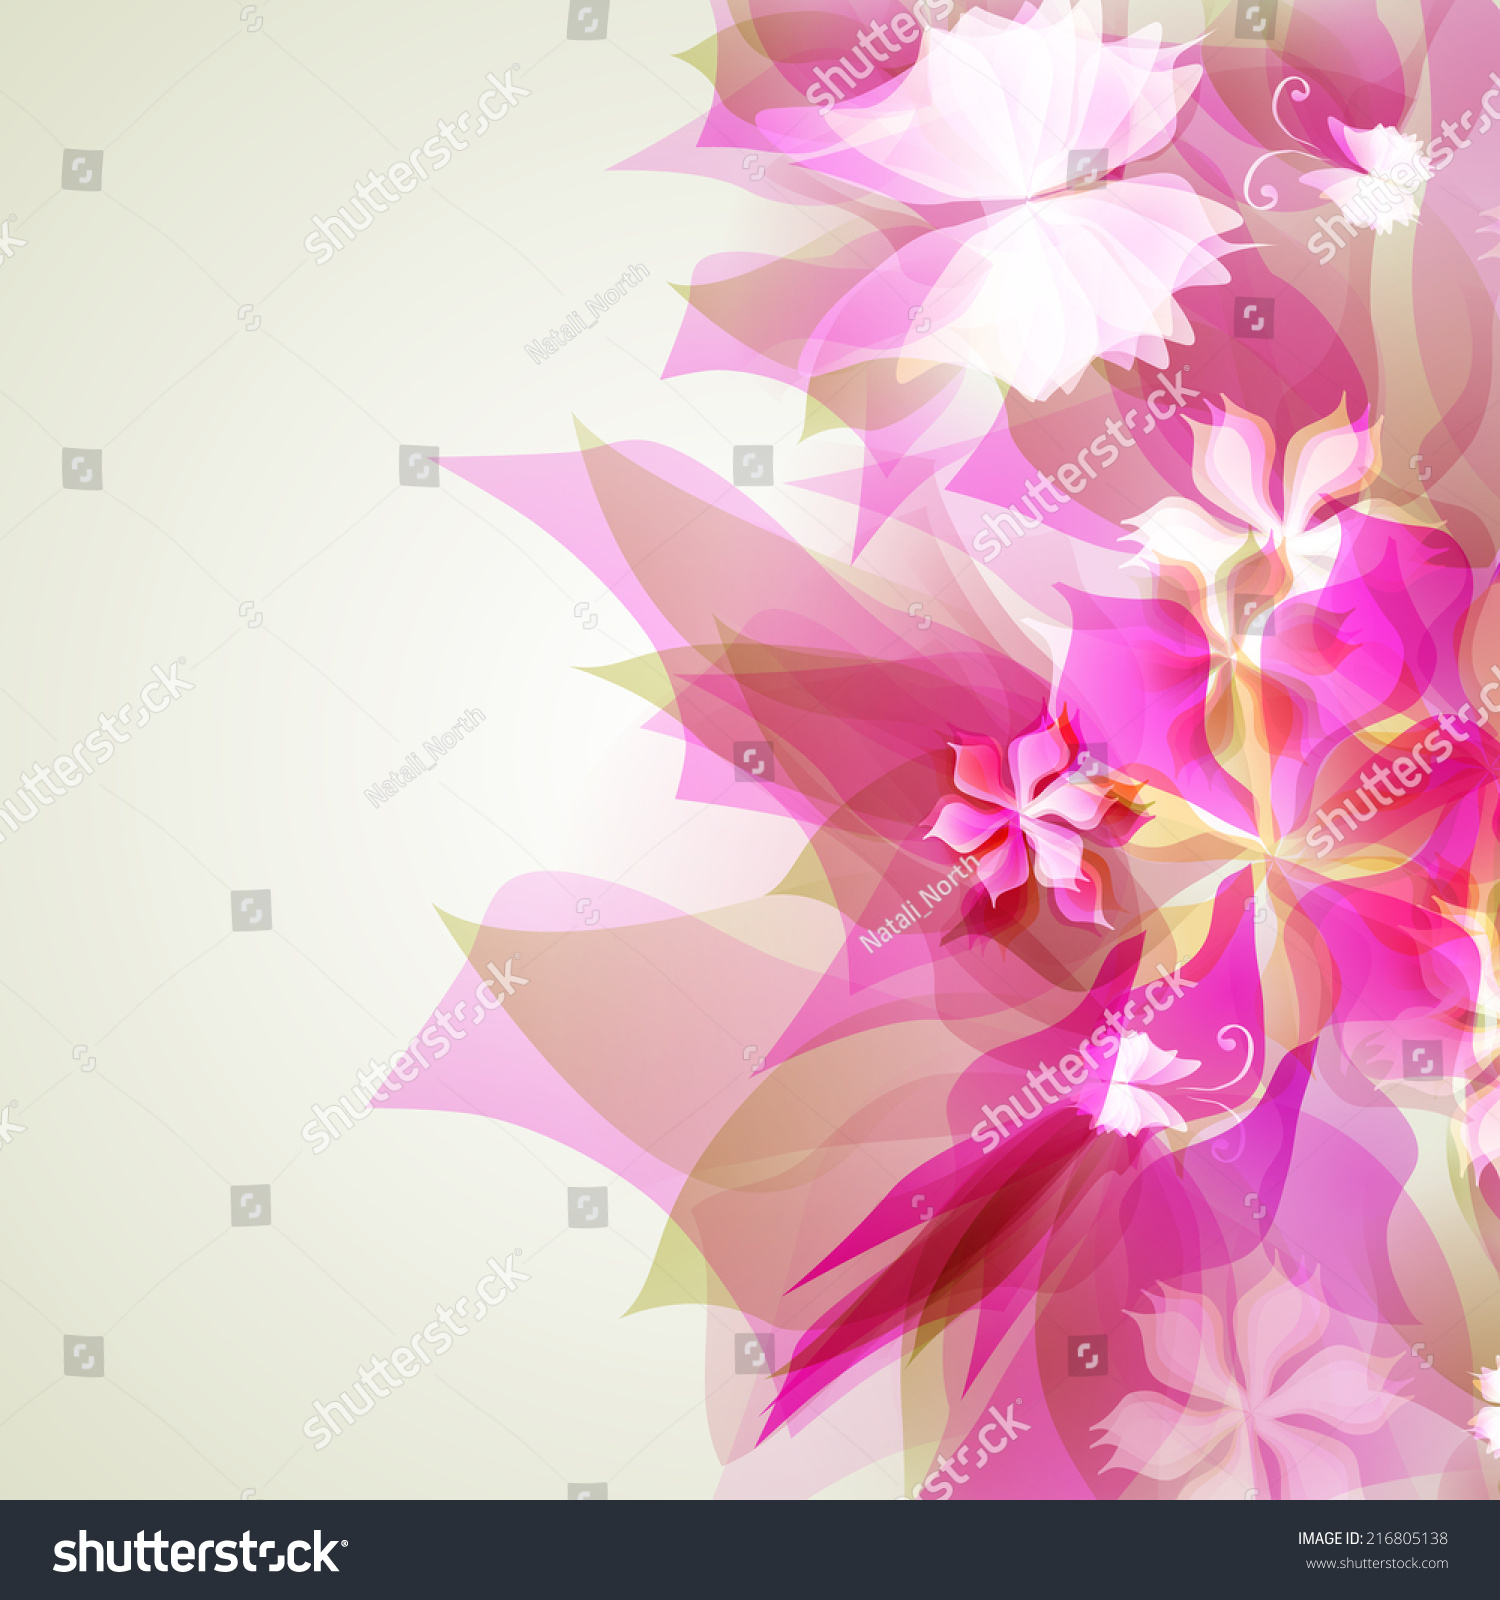 Illustrator Abstract Artistic Background Pink Floral Stock